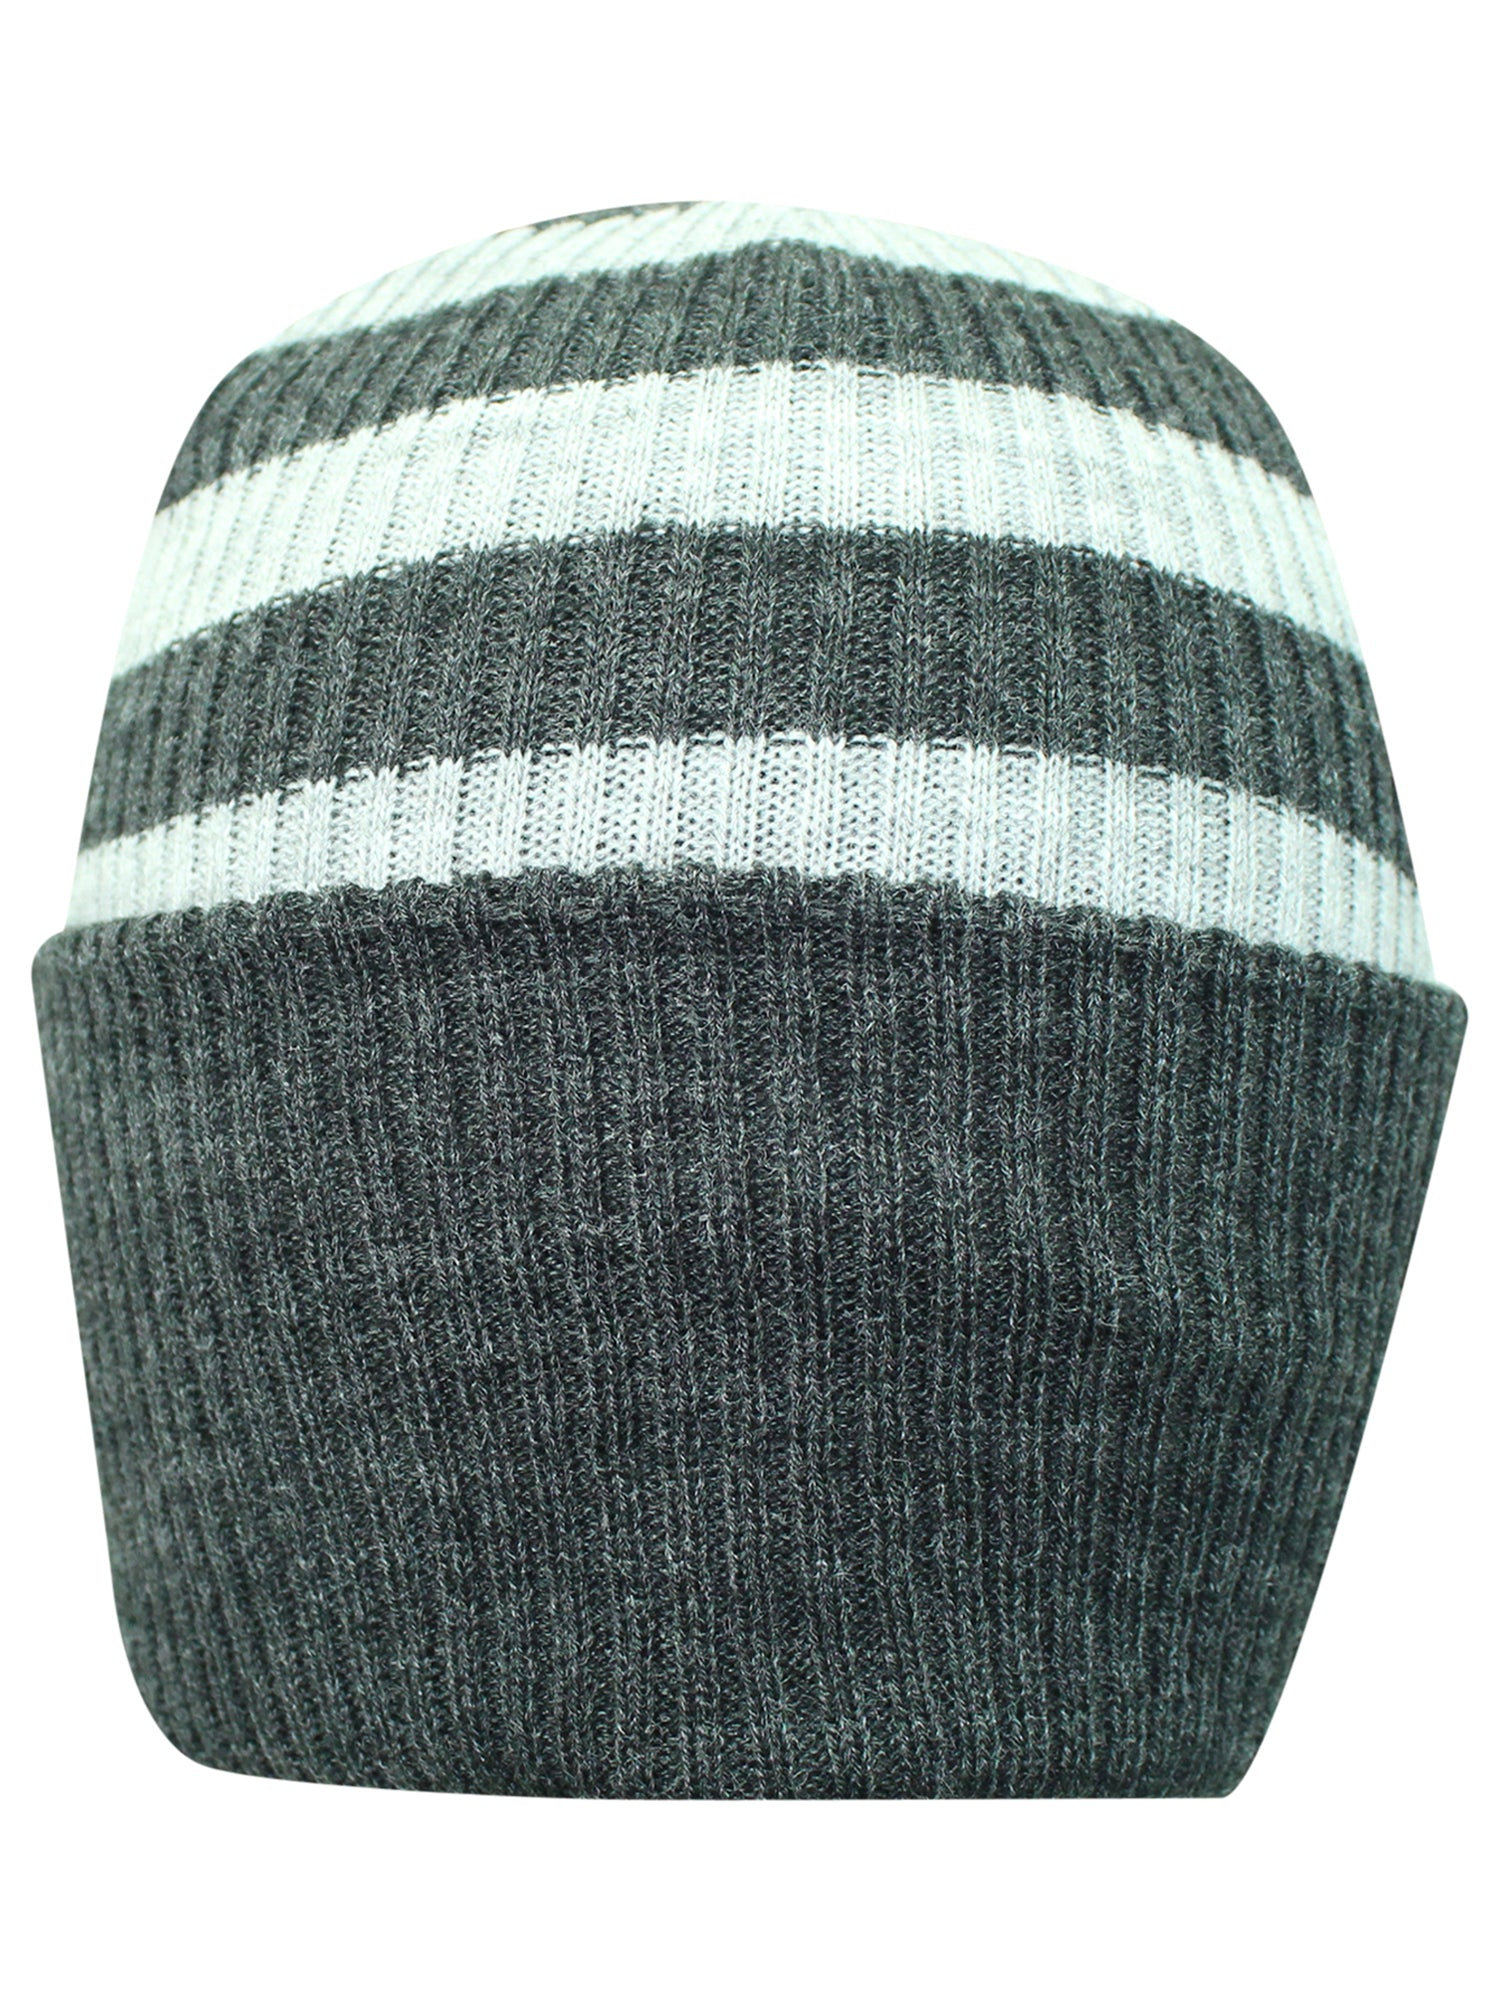 Light Gray Striped Mega Knit Slouchy Beanie Hat Cap